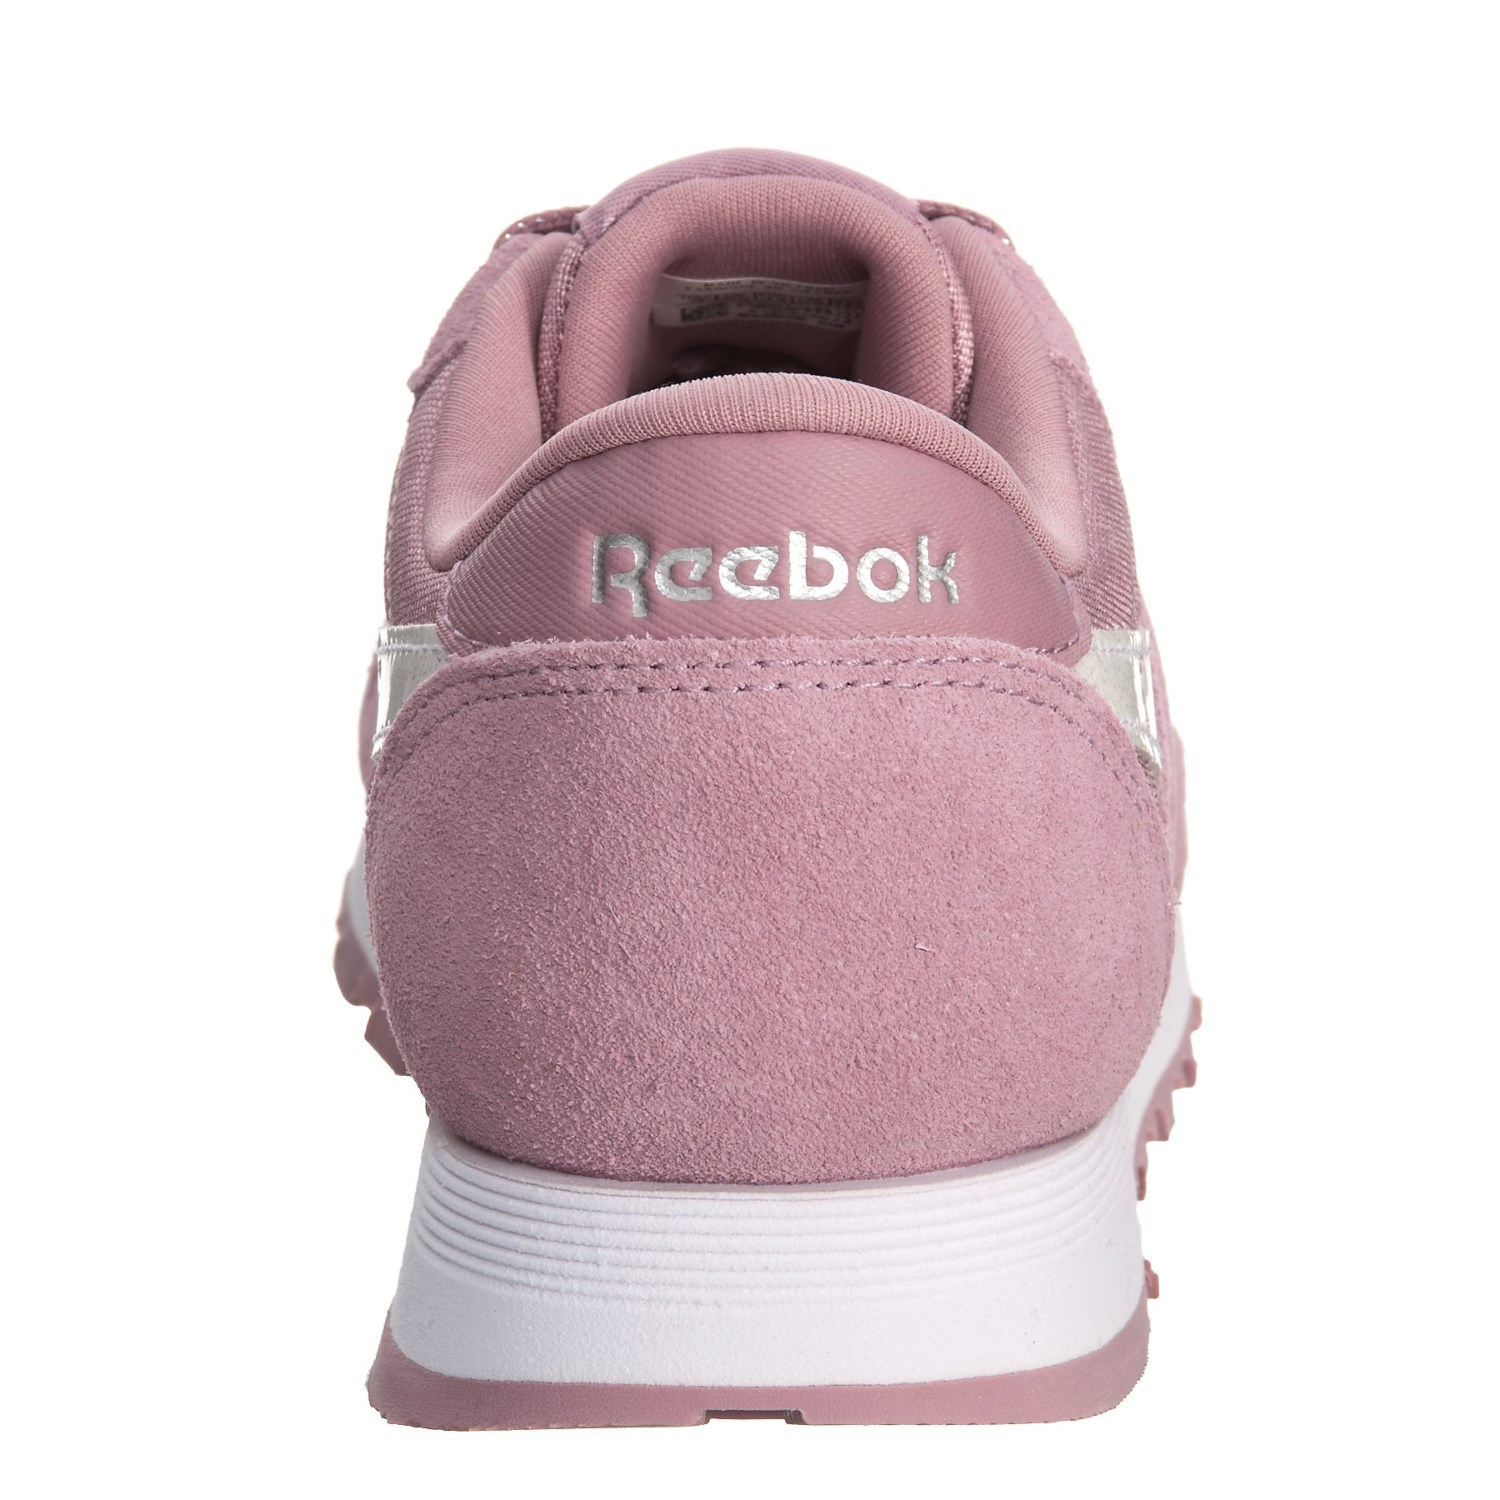 11bbde2b644 Reebok Classic Suede-Nylon Sneakers (For Little and Big Girls ...